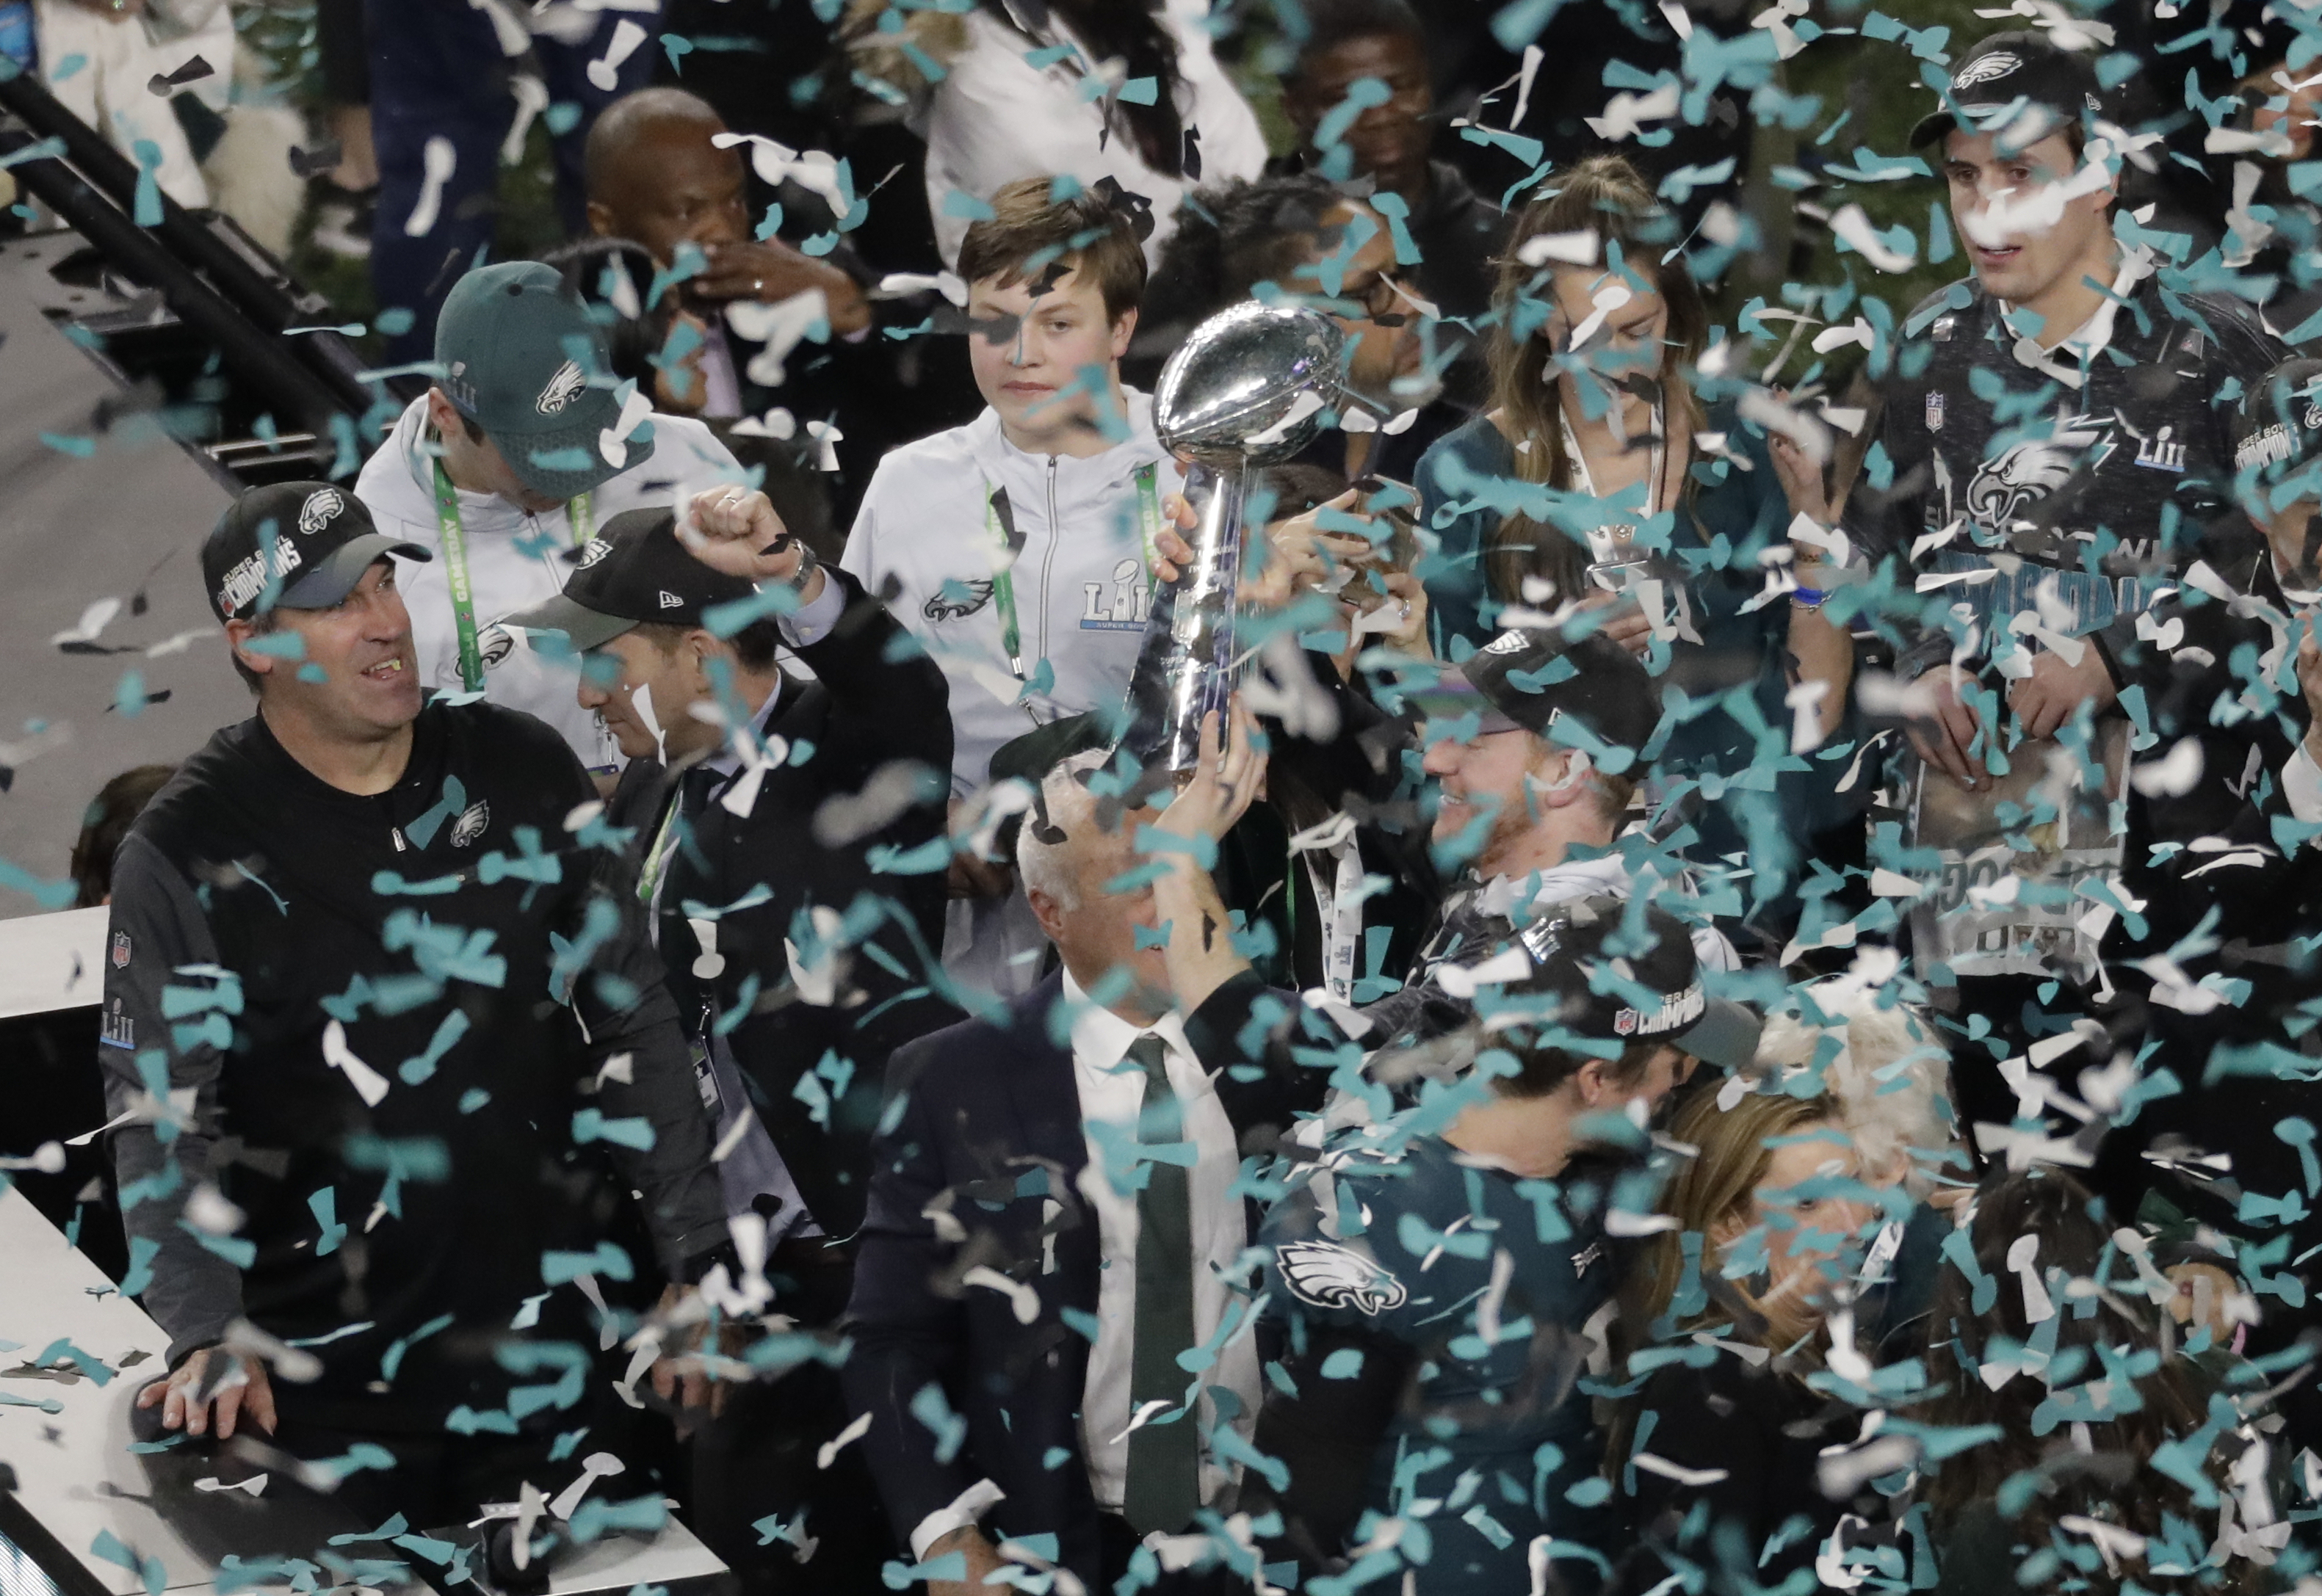 <div class='meta'><div class='origin-logo' data-origin='AP'></div><span class='caption-text' data-credit='AP Photo/Eric Gay'>Philadelphia Eagles quarterback Carson Wentz hoists the Vincent Lombardi trophy after the NFL Super Bowl 52 football game against the New England Patriots.</span></div>